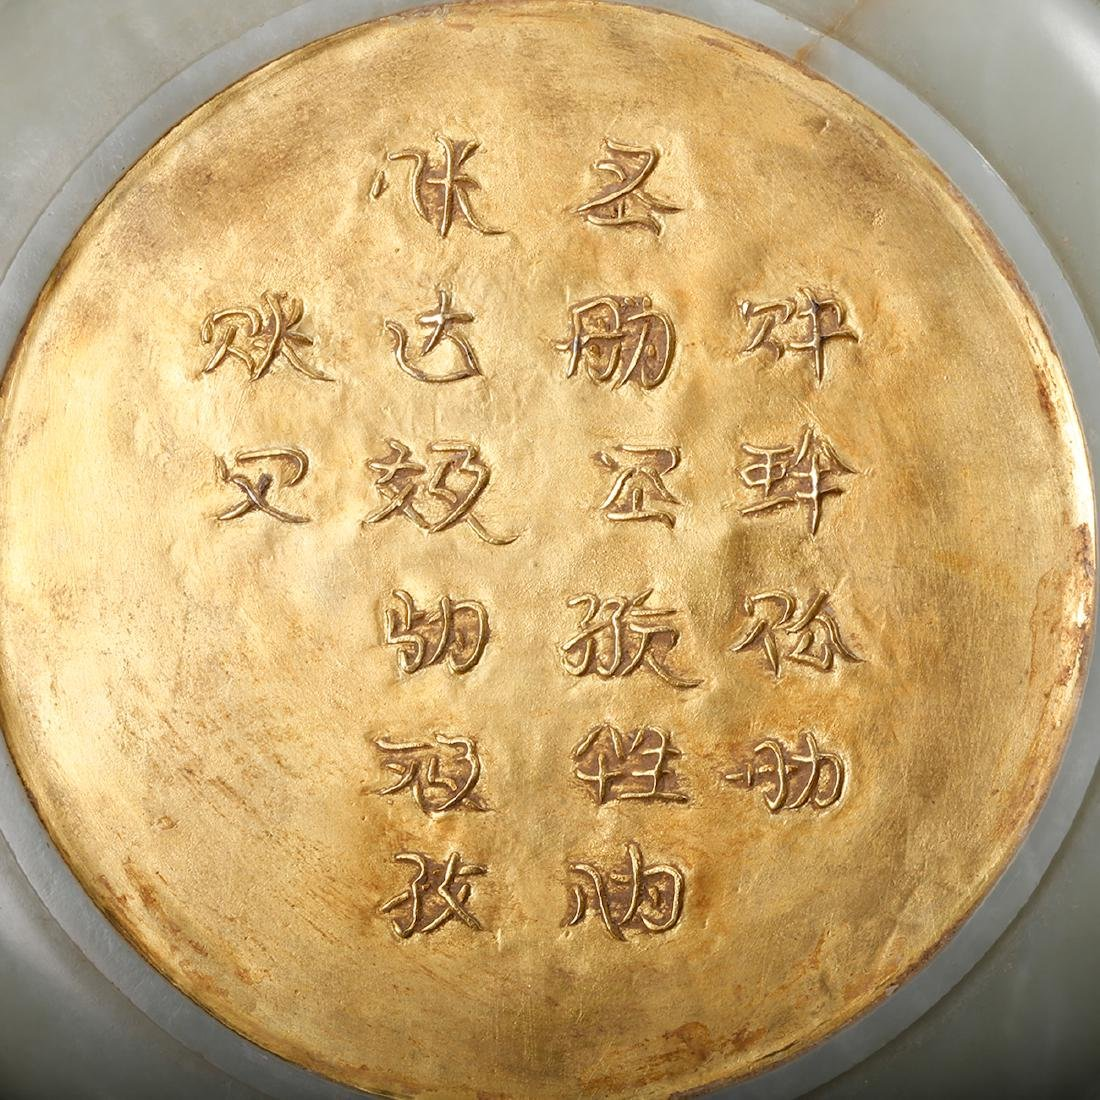 CHINESE WHITE JADE PLATE WITH GILT SILVER INLAID - 8